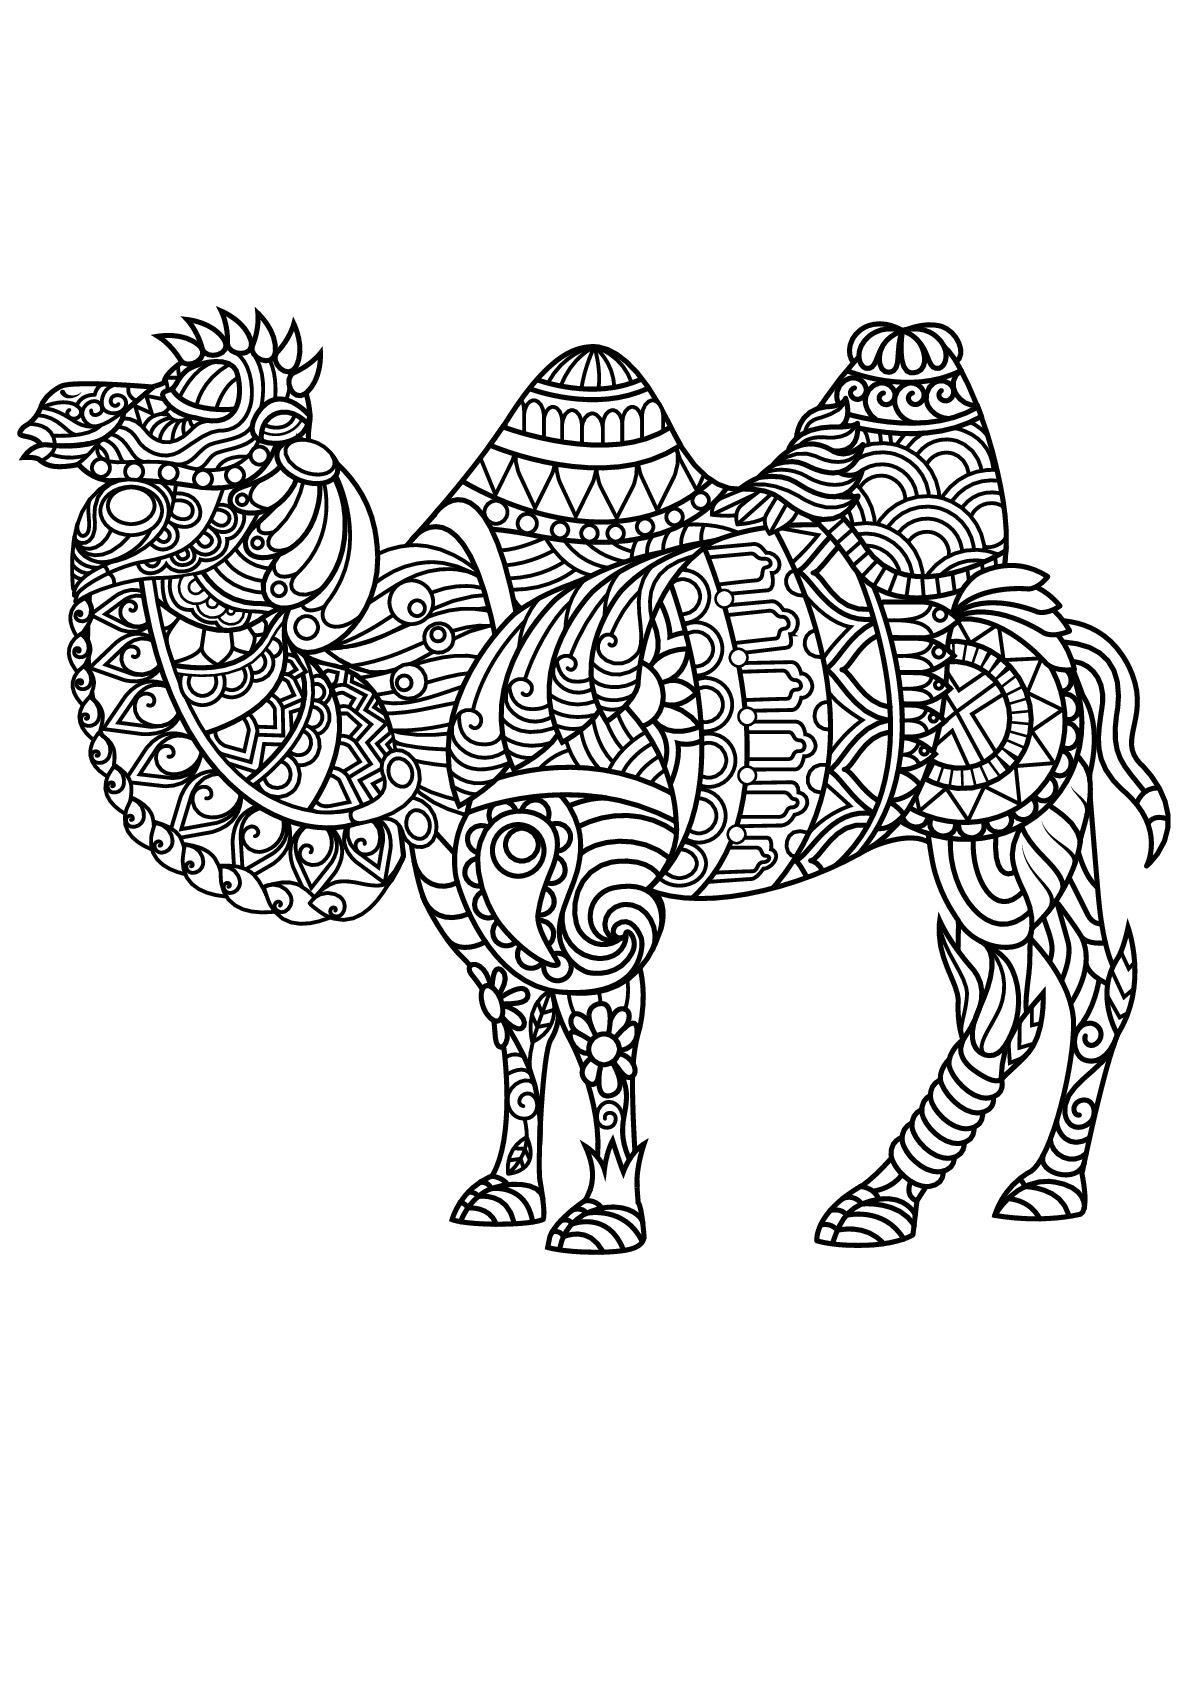 camel pictures to colour camel coloring pages for students preschool and kindergarten pictures camel colour to